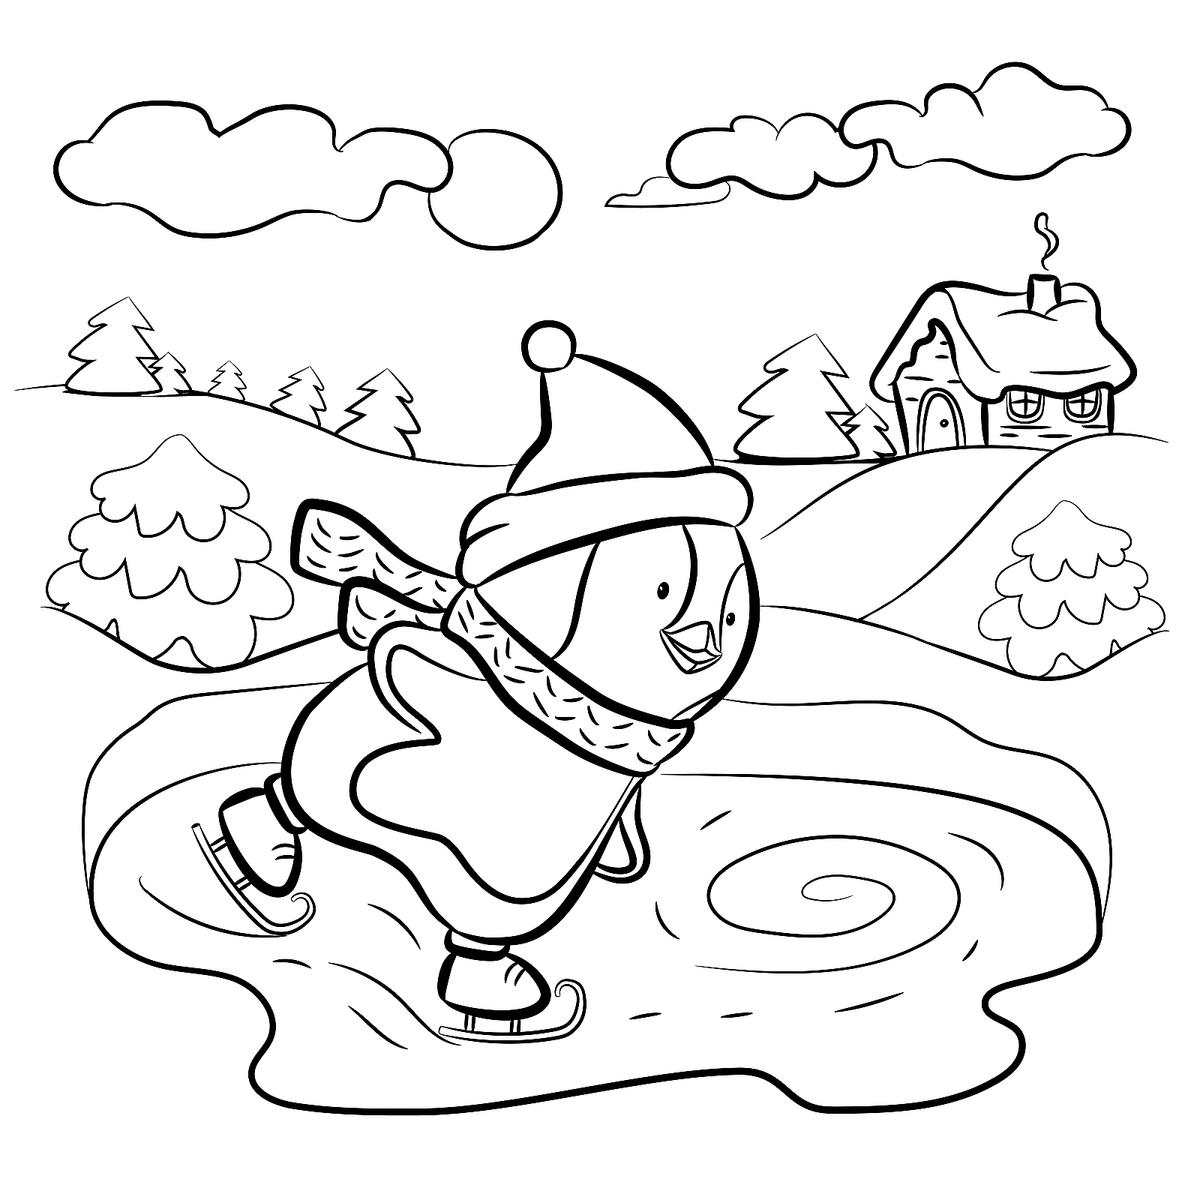 winter coloring free printable winter coloring pages coloring winter